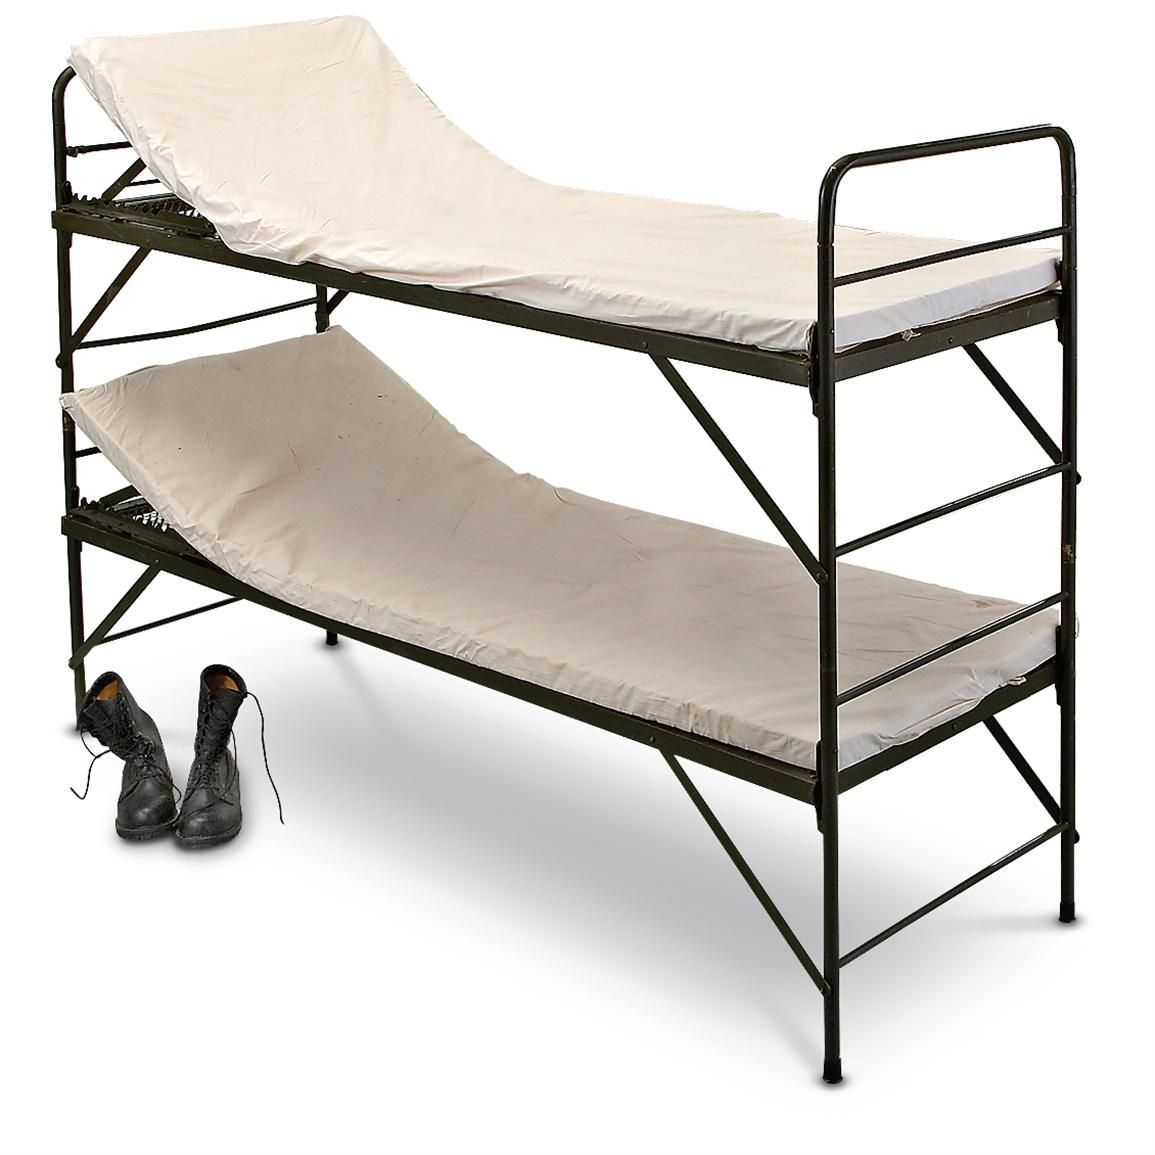 4 New German Military Hospital Bunk Beds